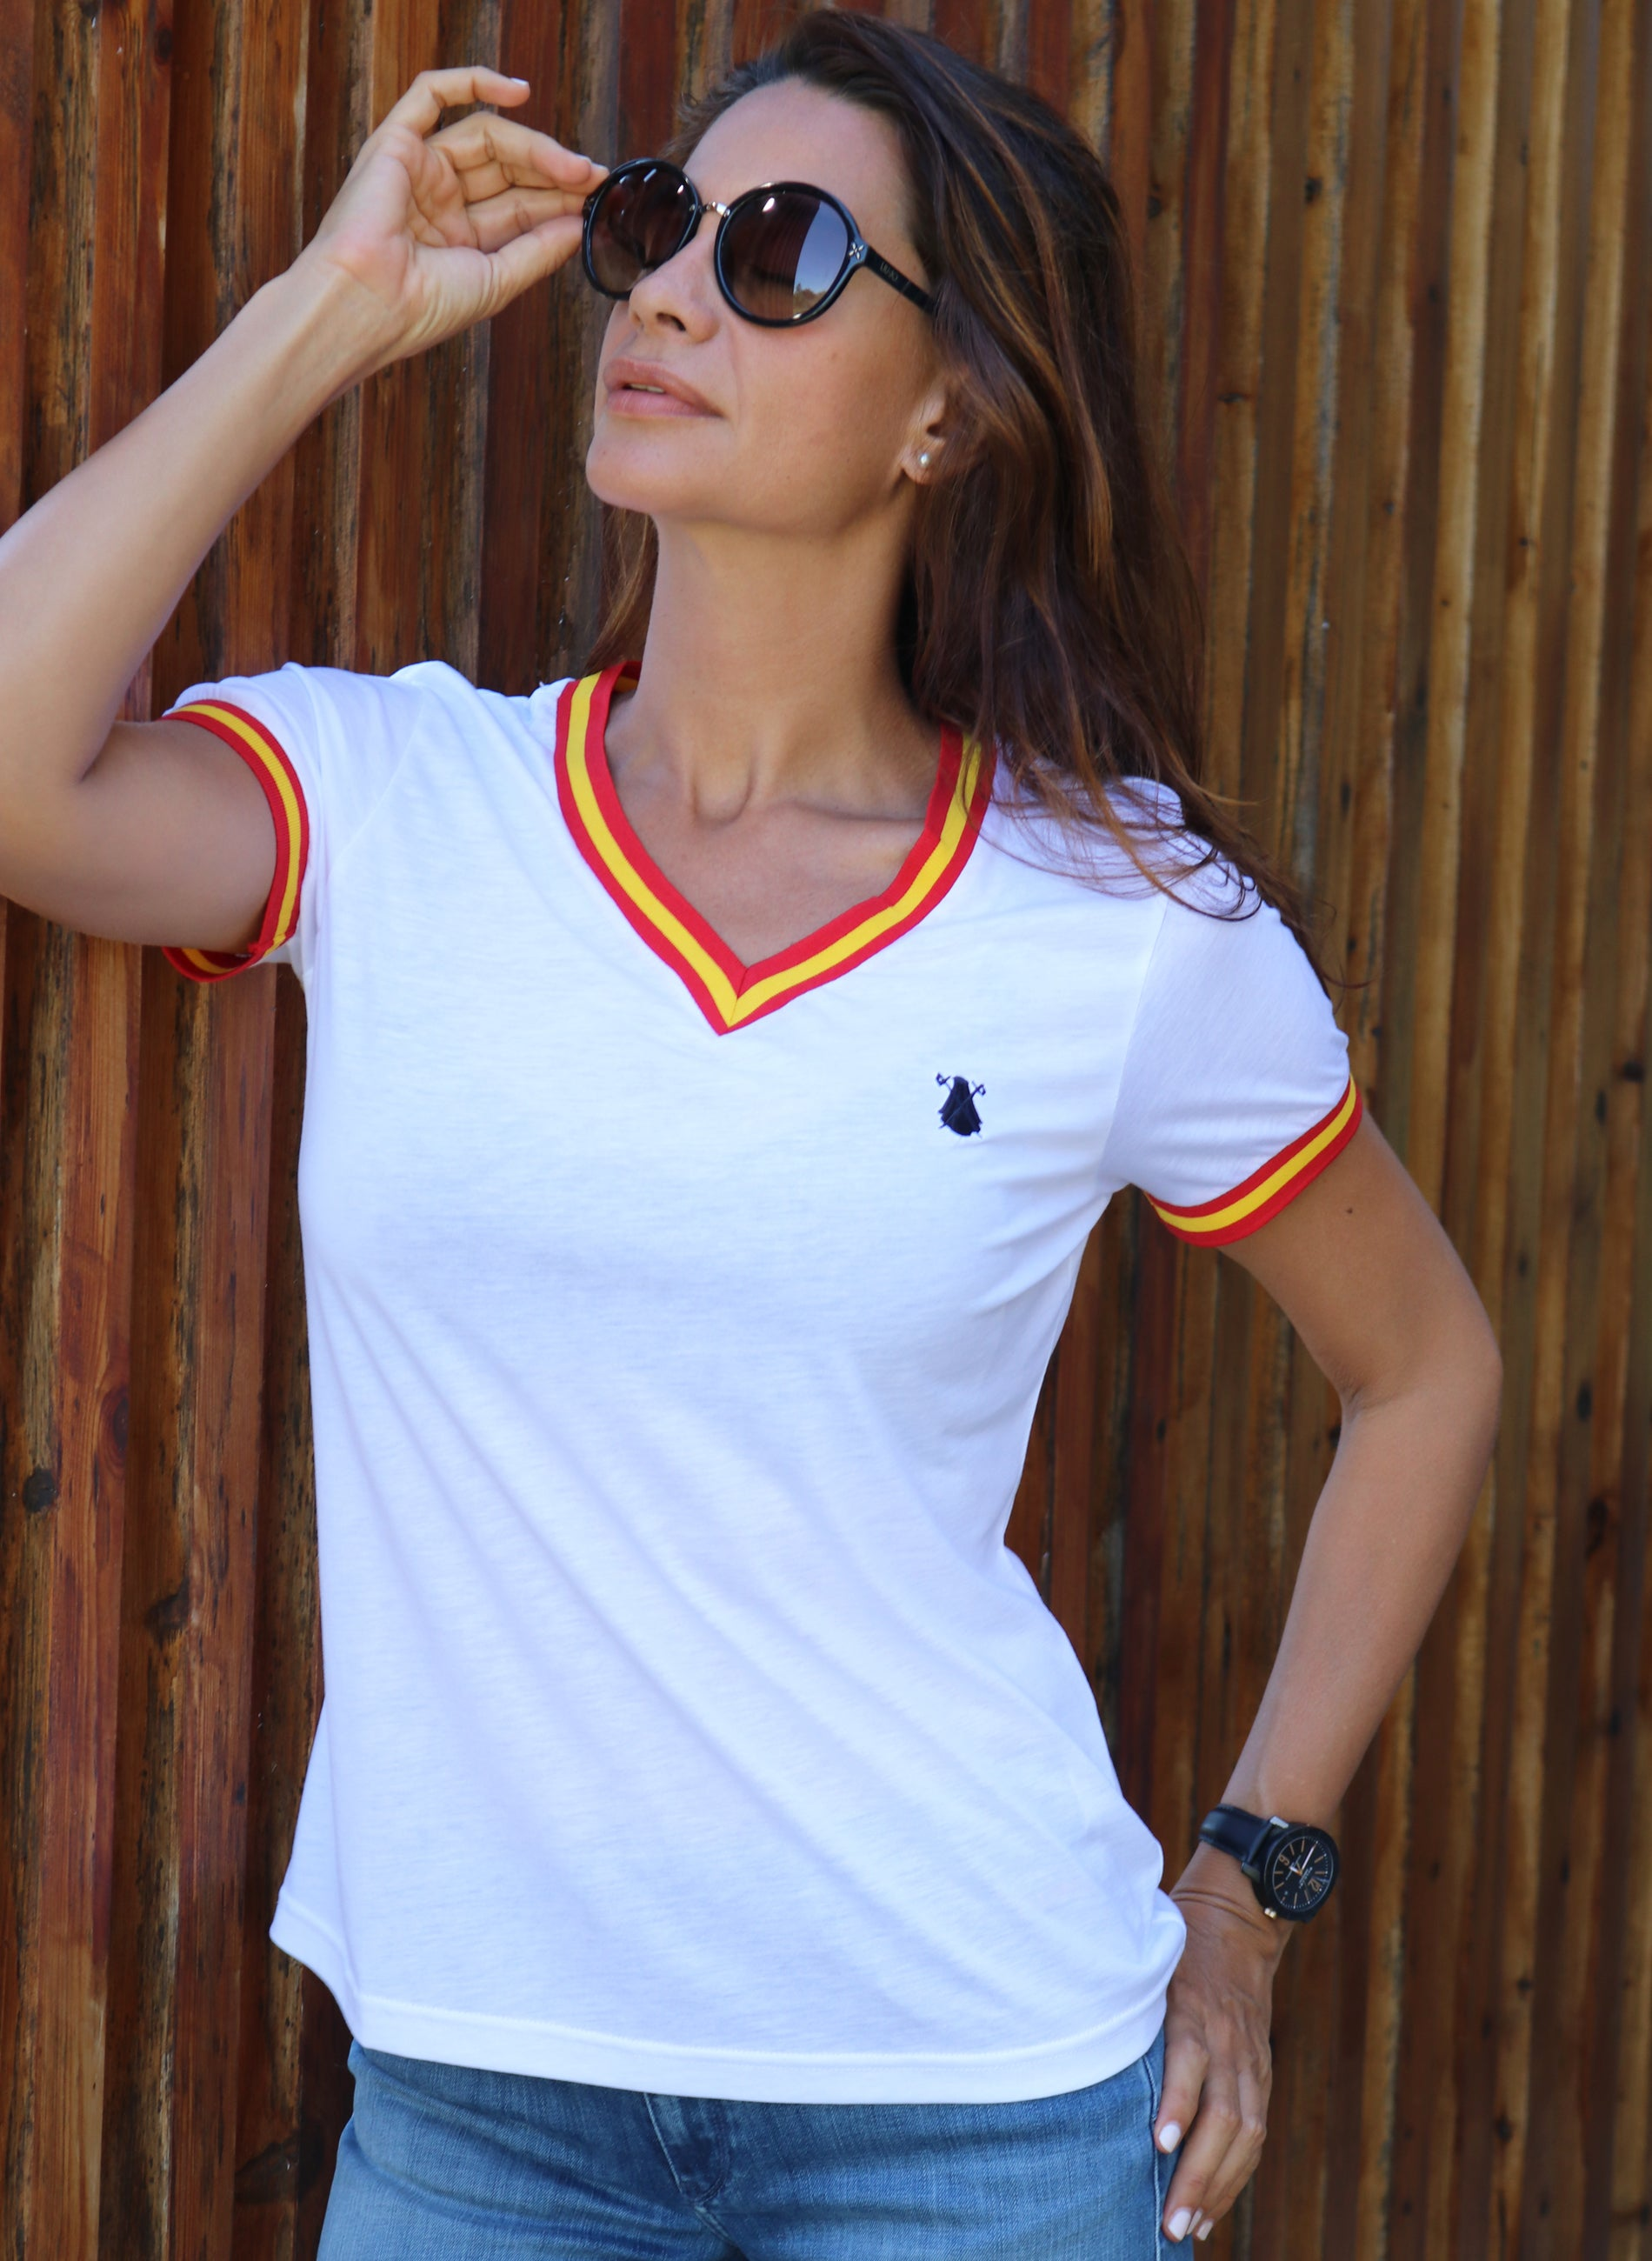 Chemise Blanche Espagne Femme